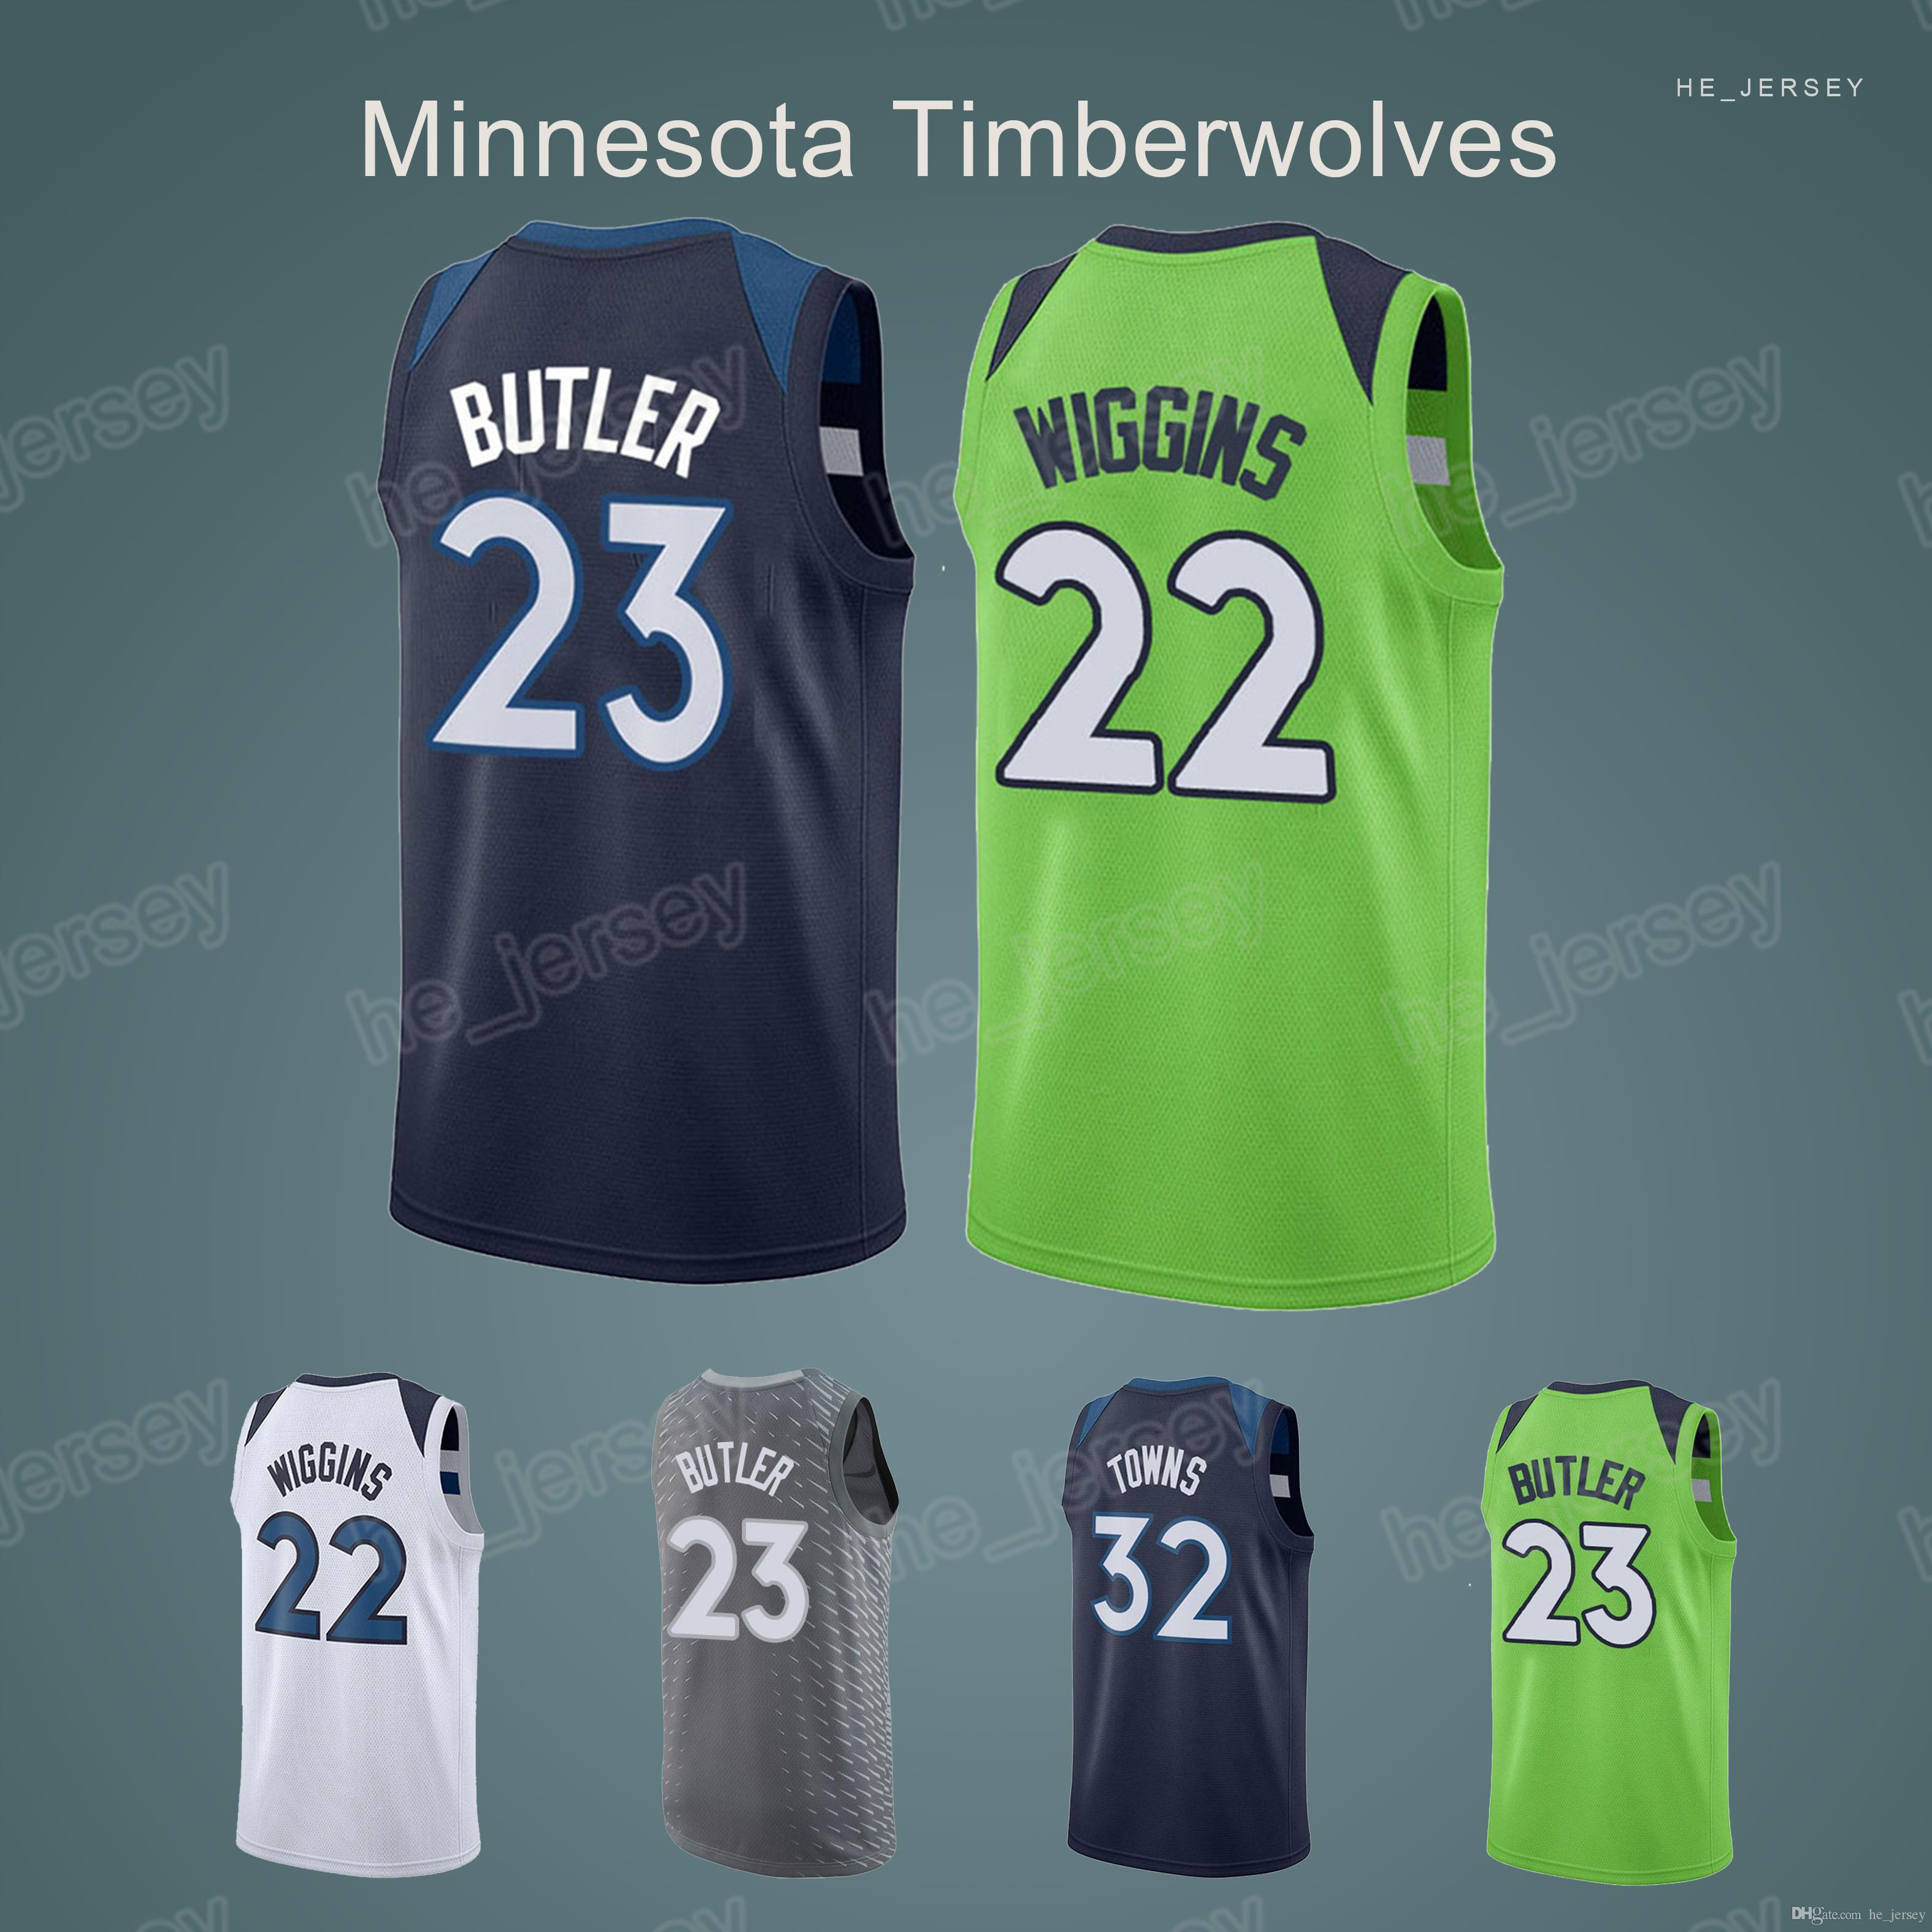 new product bac6f ede28 closeout minnesota timberwolves new jersey 1a40d e2845